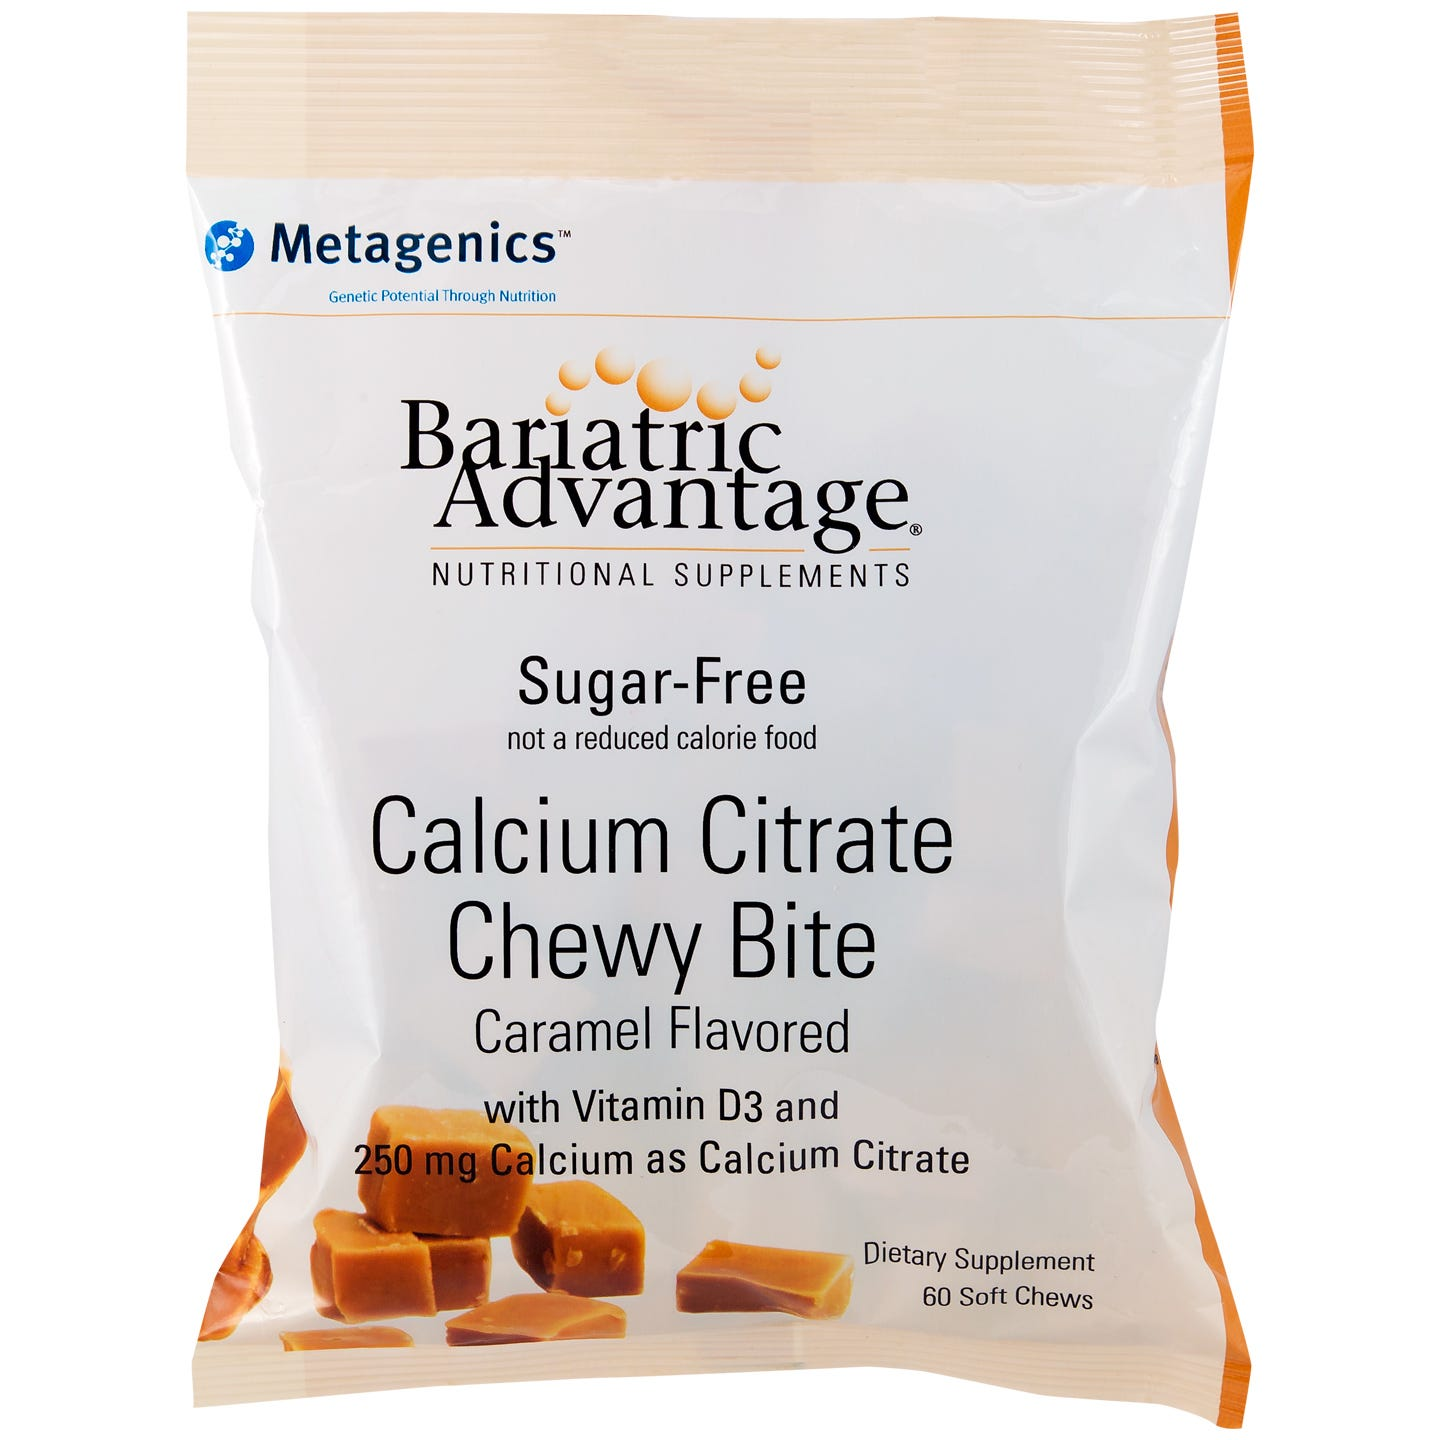 Calcium Citrate Chewy Bites Caramel (60 ct) - Bariatric Advantage - Rapid Diet Weight Loss Products Shop